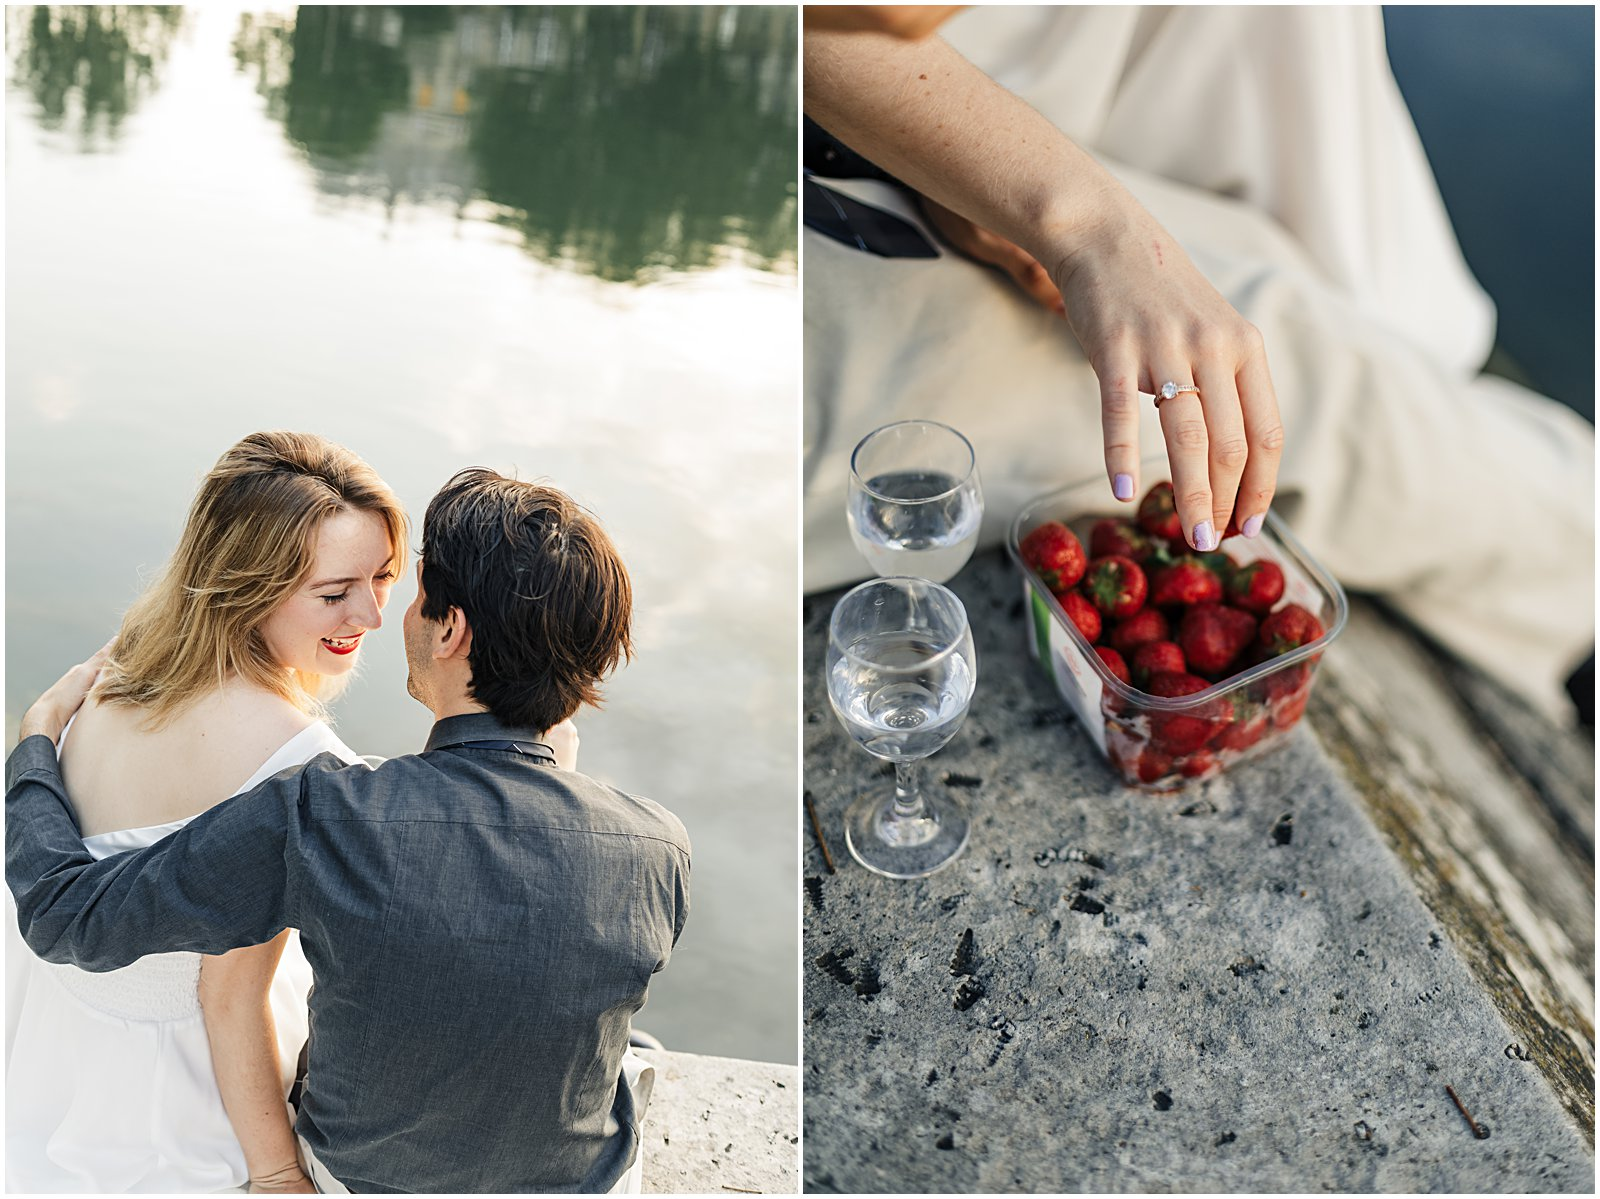 sunrise anniversary photoshoot along the seine river in Paris hands picking and eating strawberries